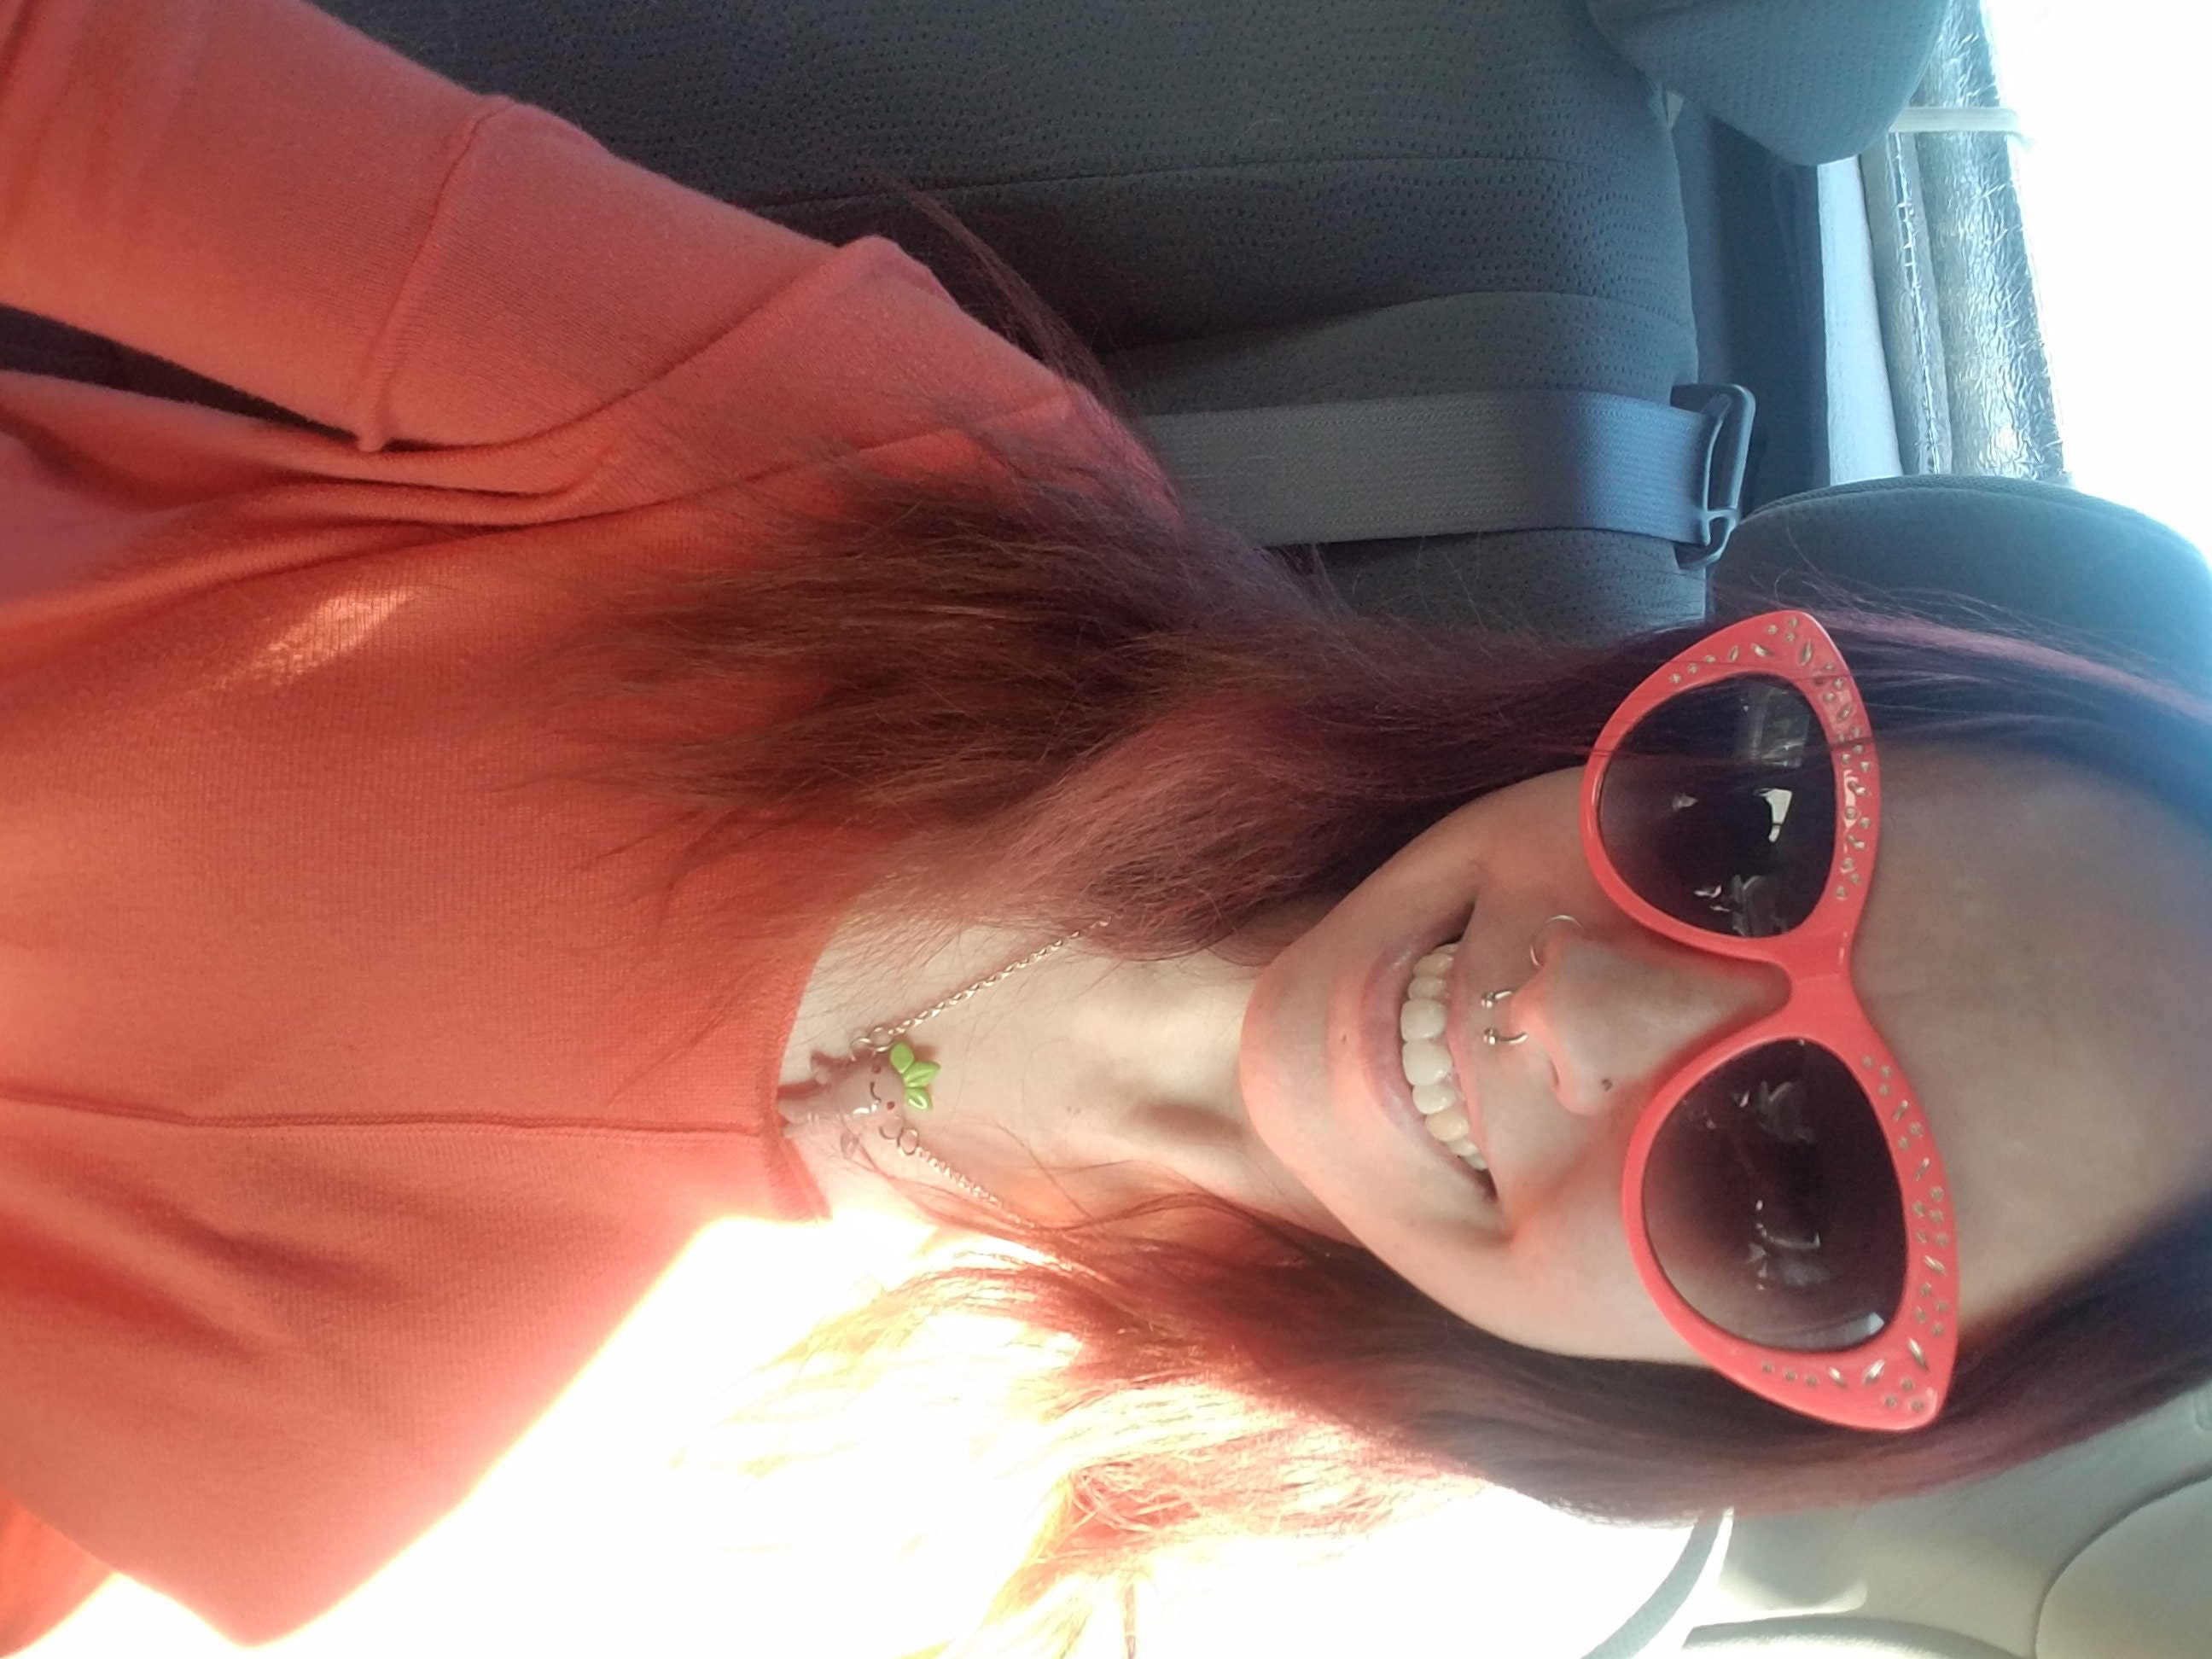 Alysse Hedrick added a photo of their purchase